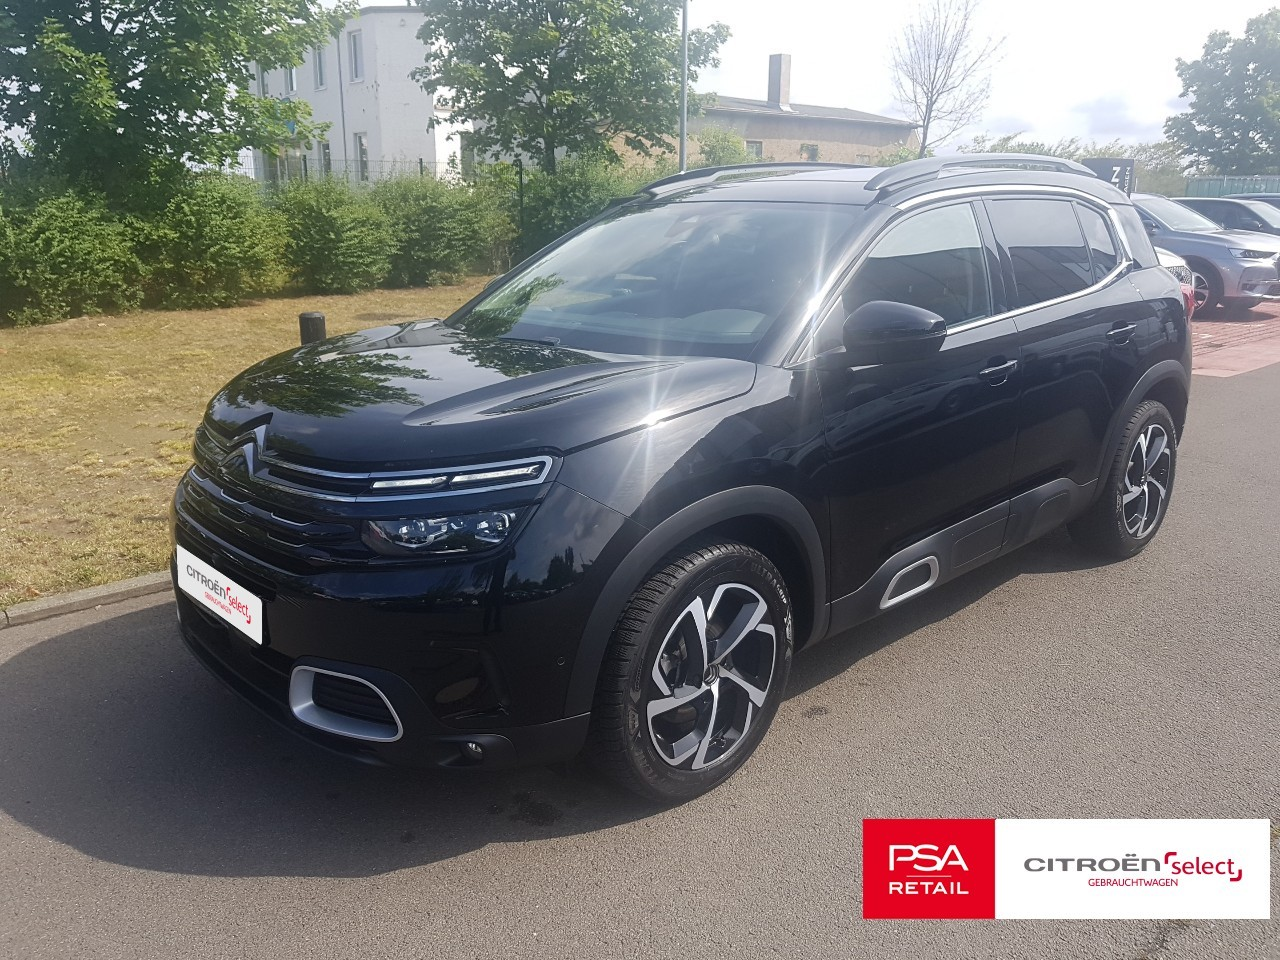 Citroën C5 Aircross SHINE BlueHDI 180 EAT8/ Navi/ SHZ/ DAB/ Keyless